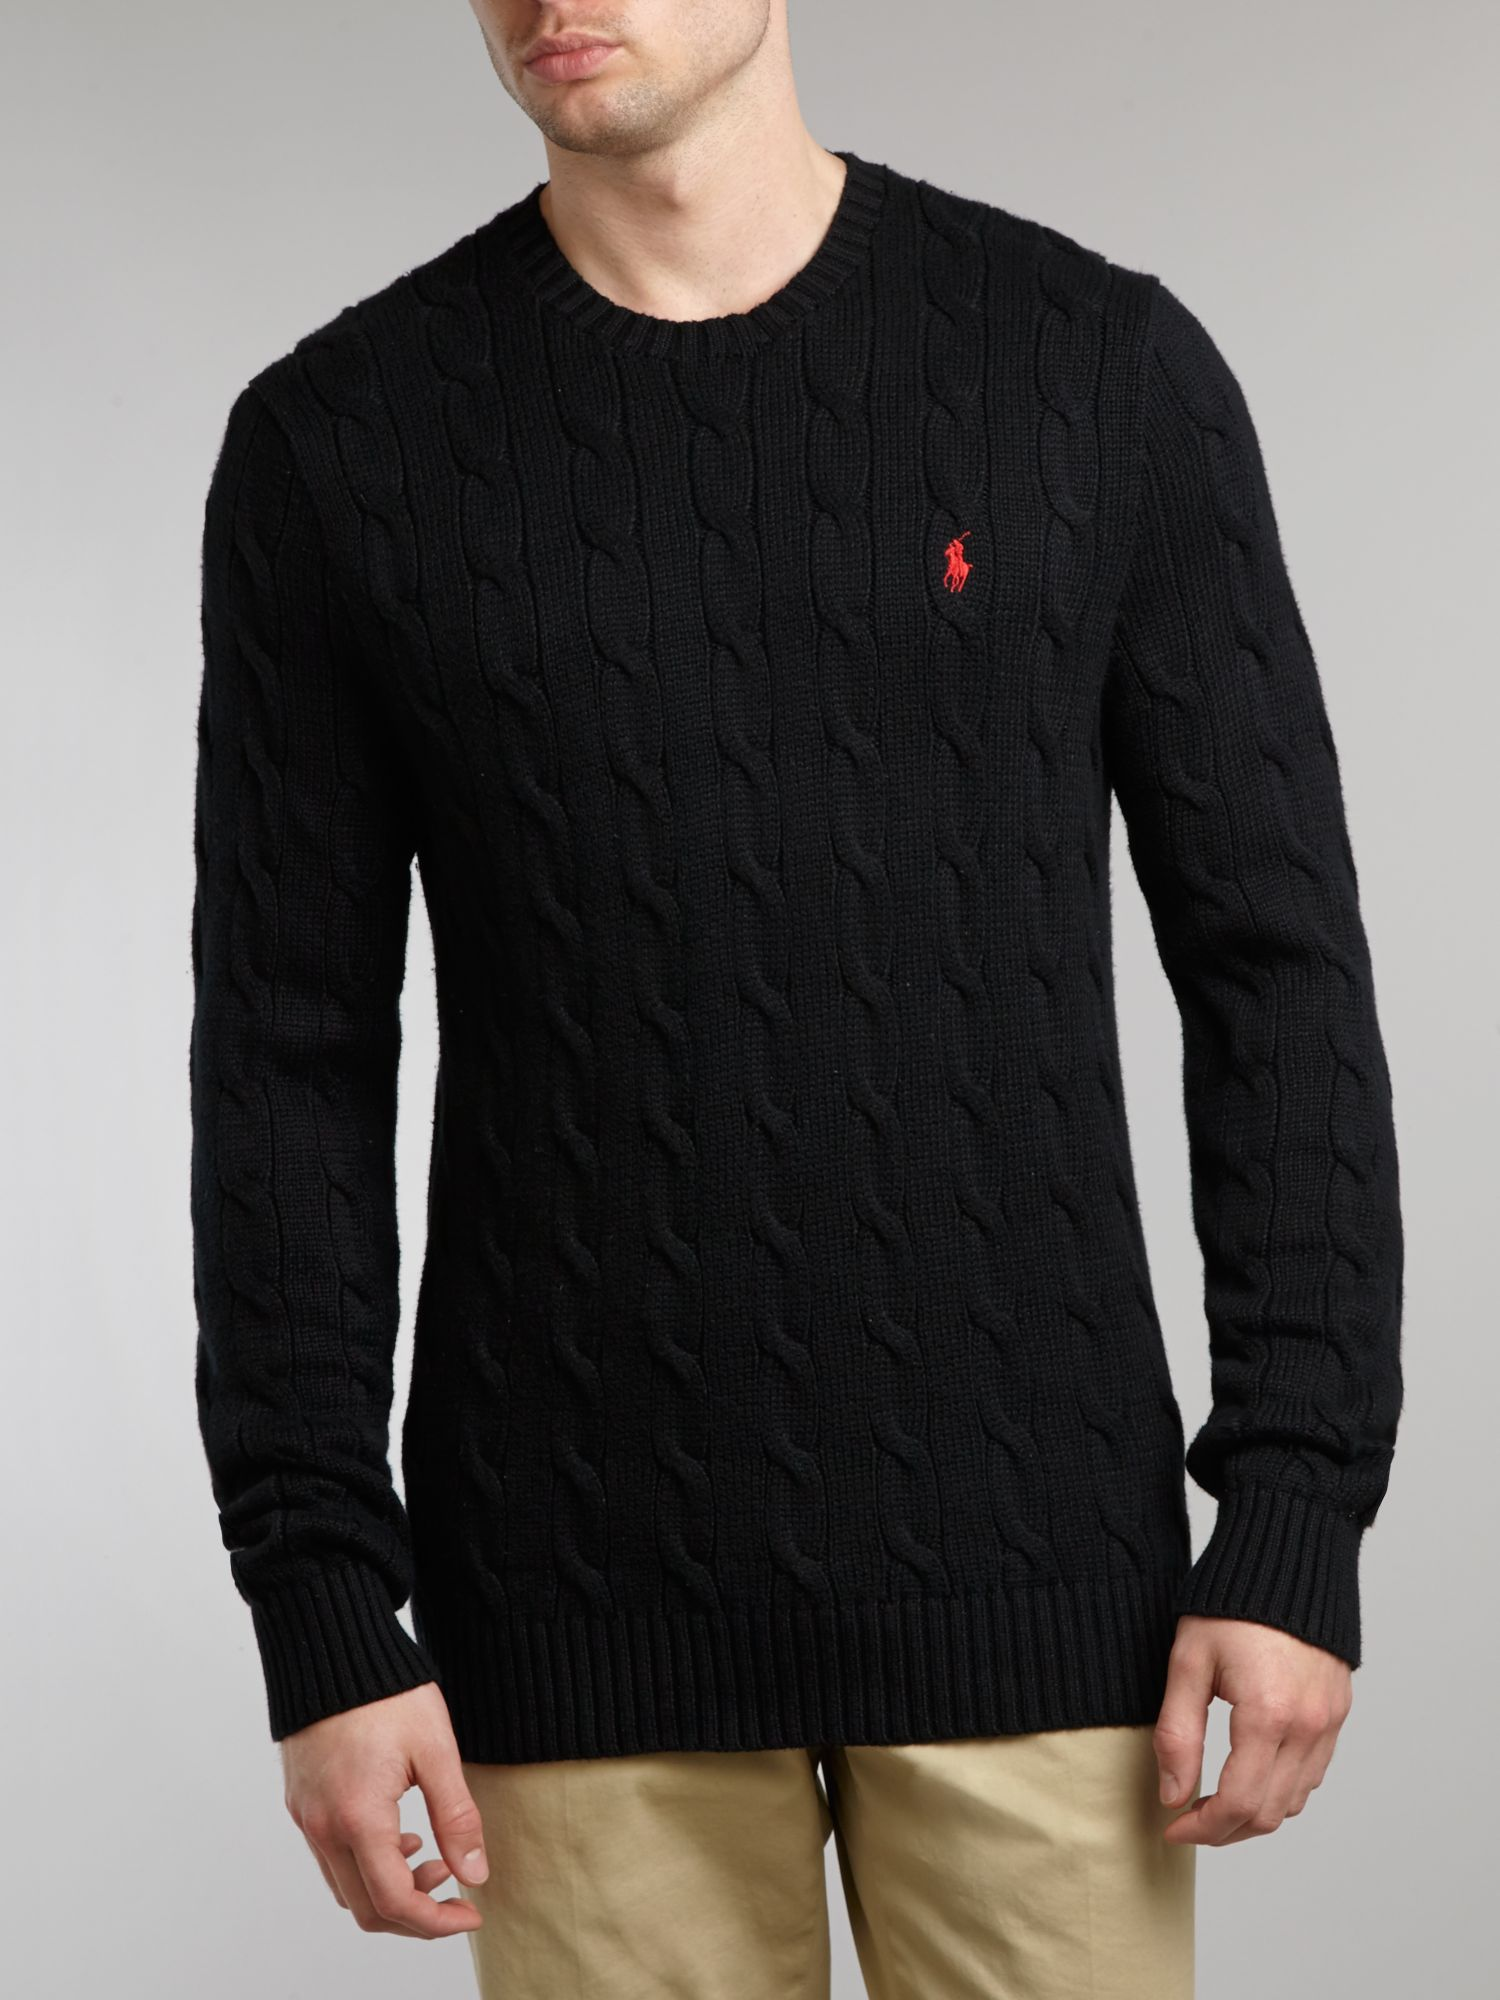 Classic cable knit crew neck jumper